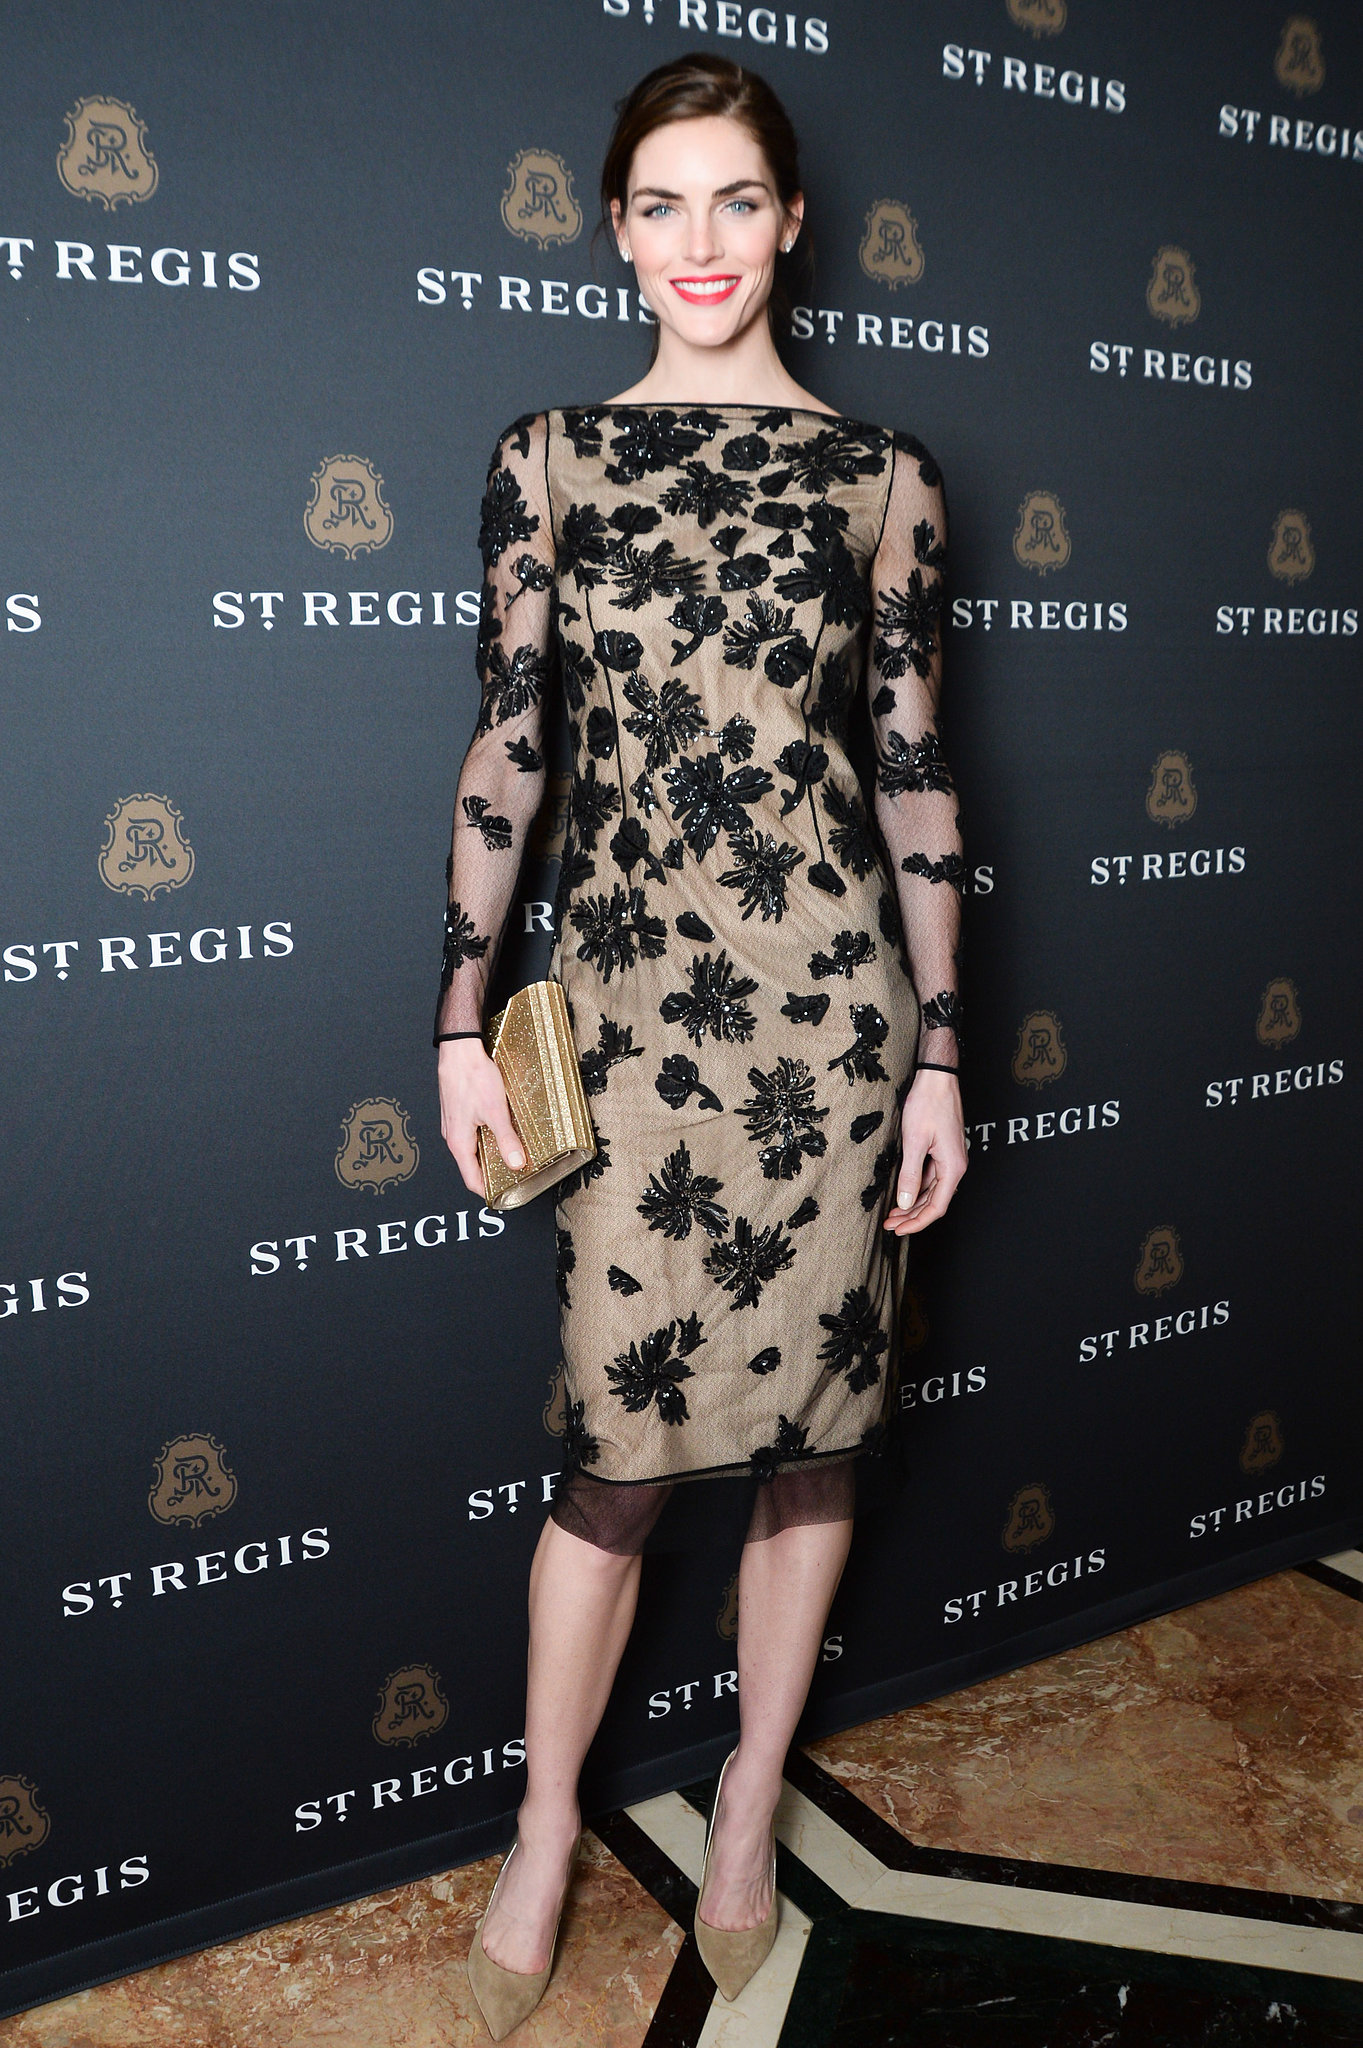 Hilary Rhoda at the St. Regis's debut of the new King Cole Bar and Salon.